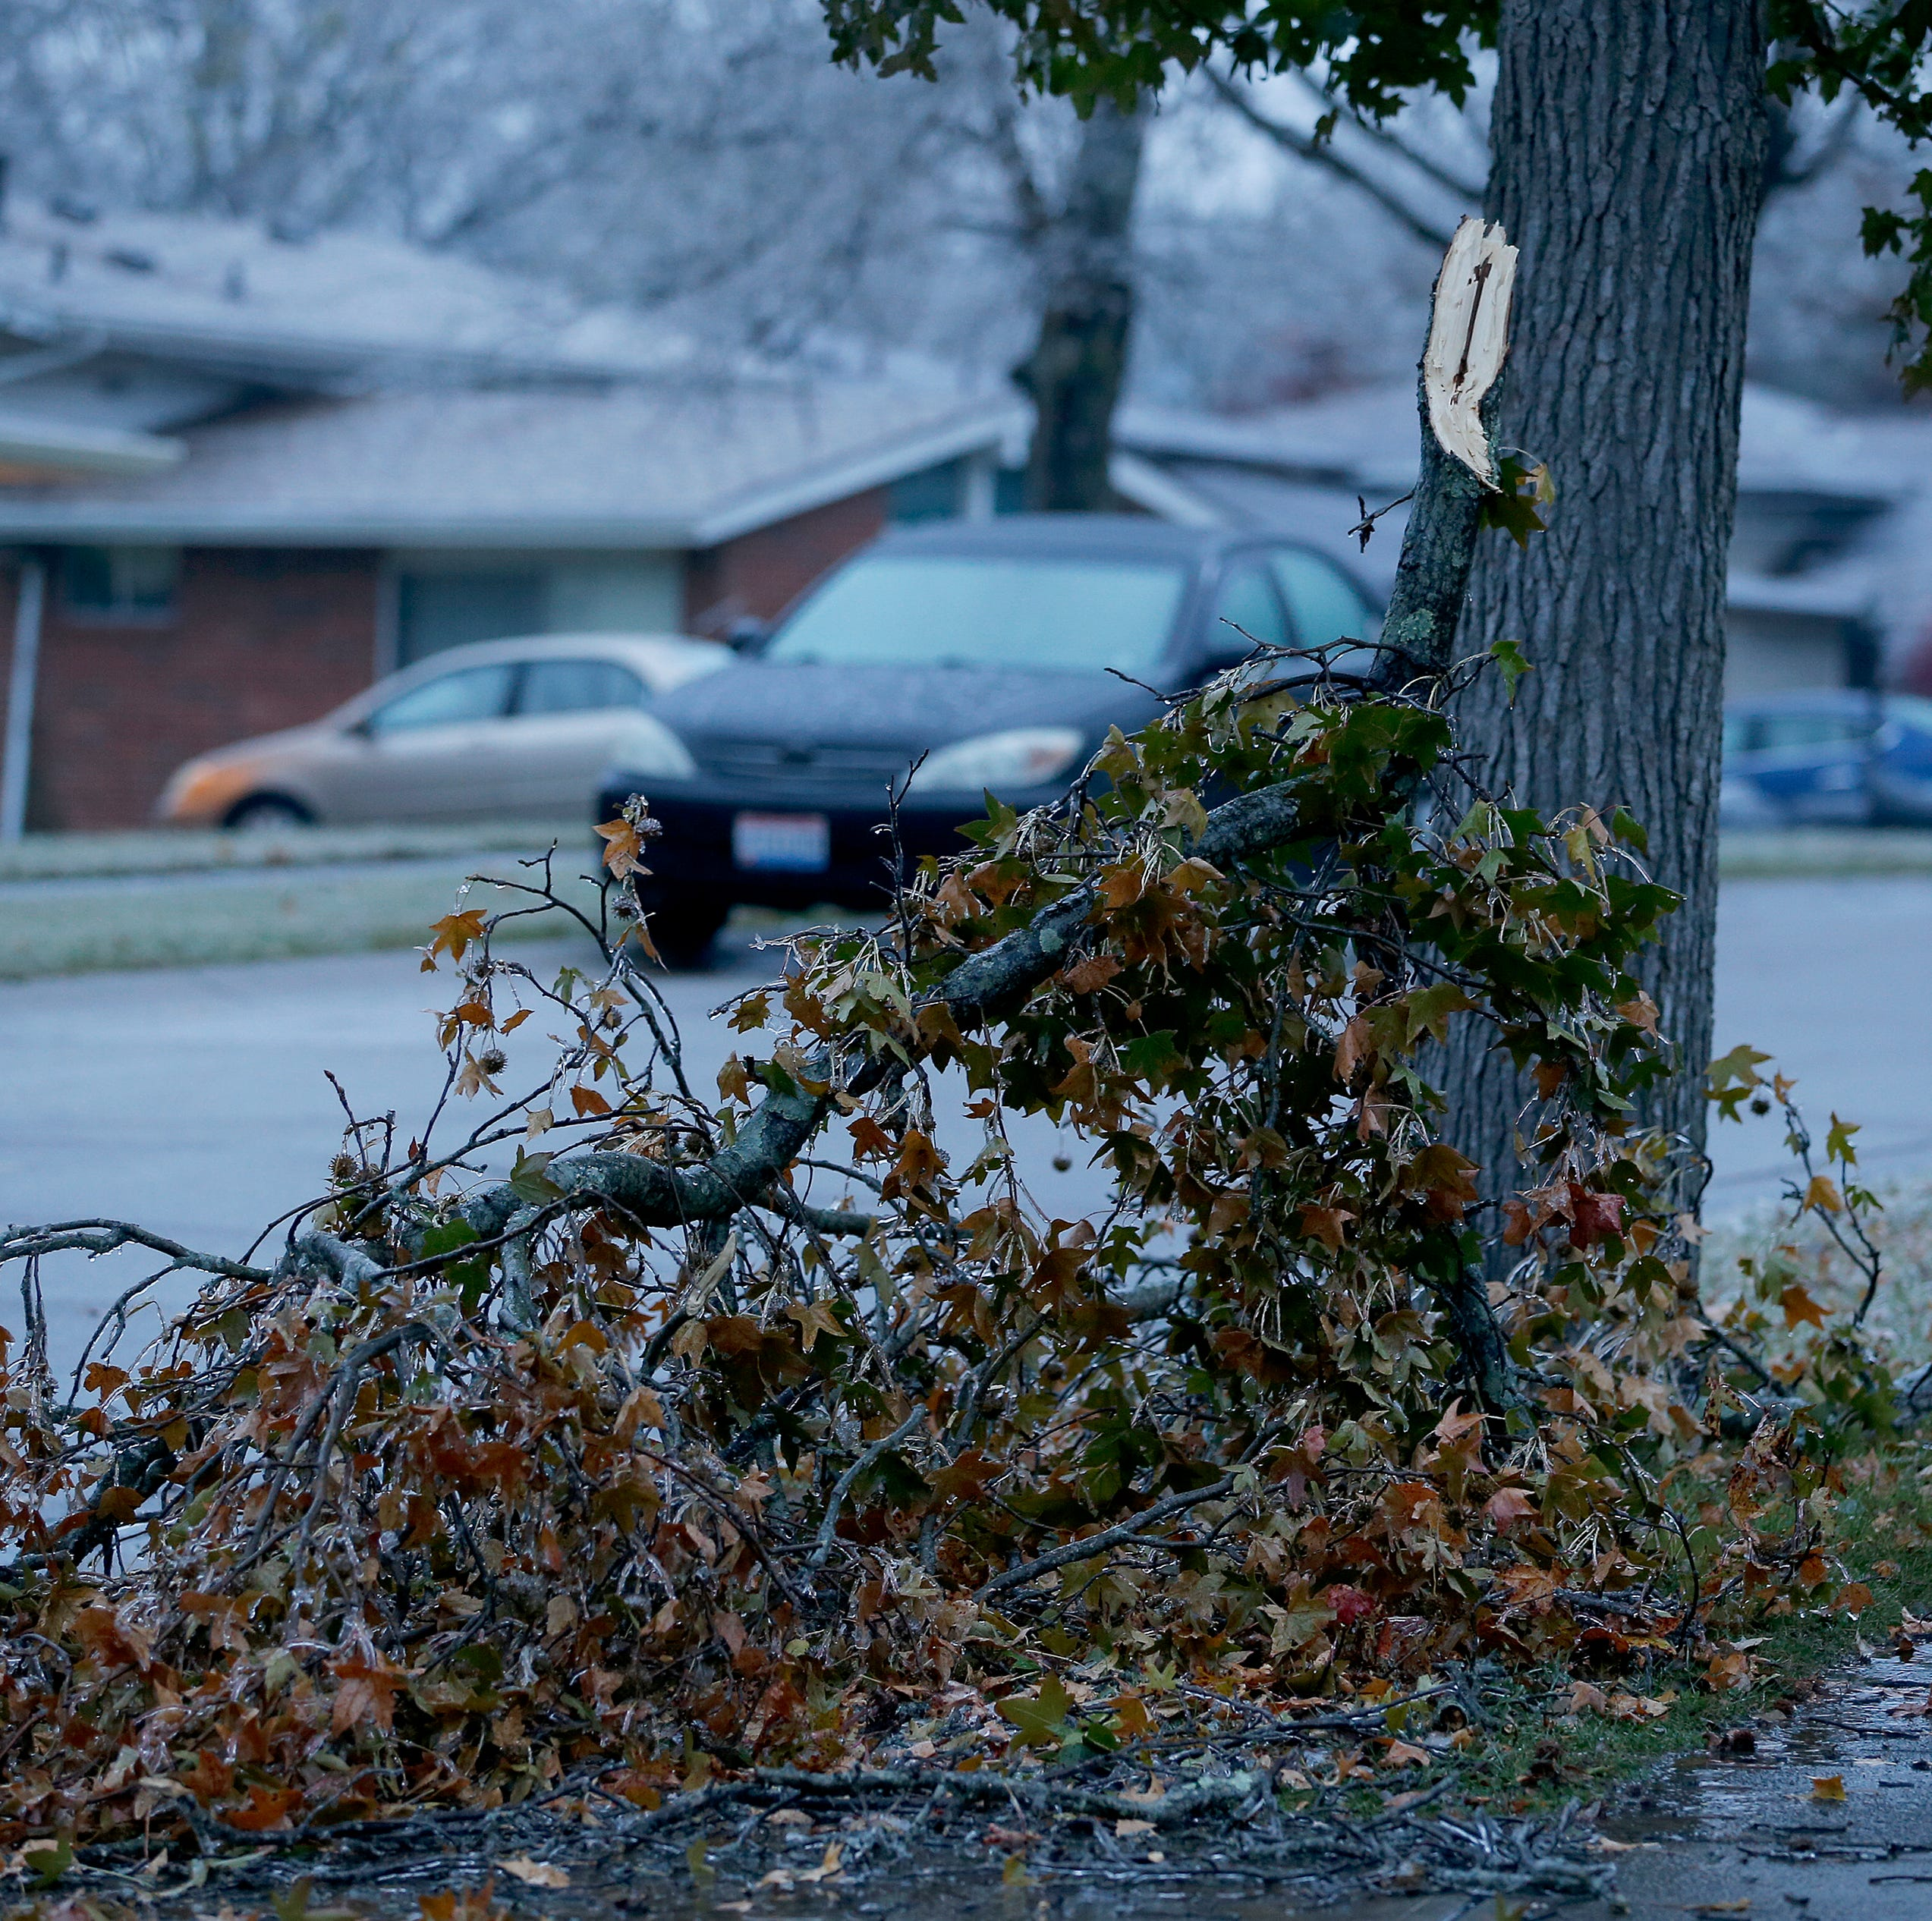 Cincinnati: Here's what to do about that ice-damaged tree